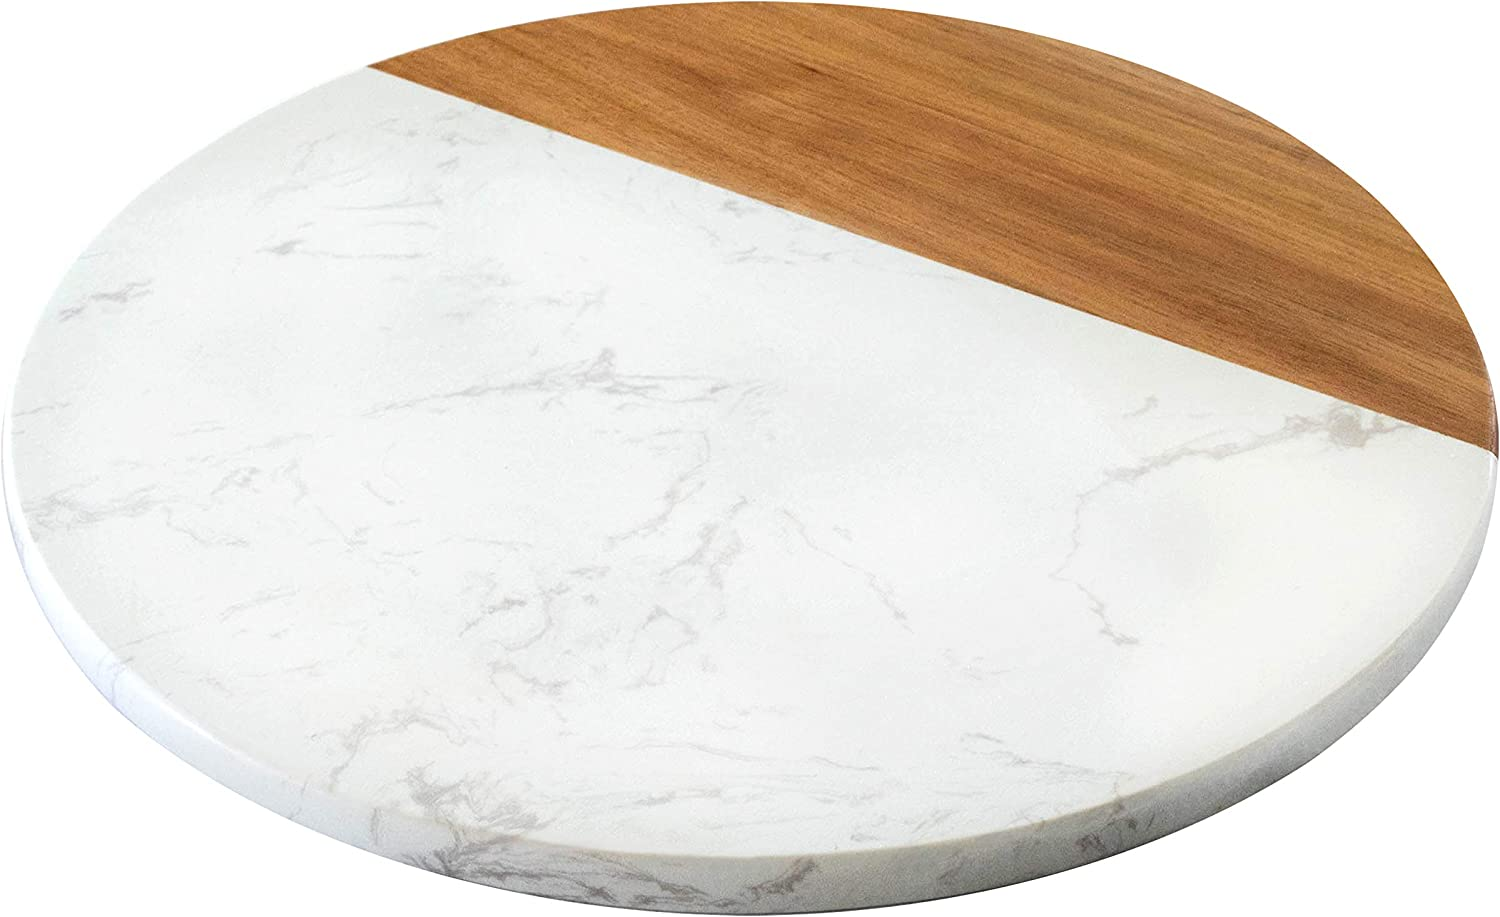 KŌRE LIVING White Marble and Acacia Wood Cheese Board - 12